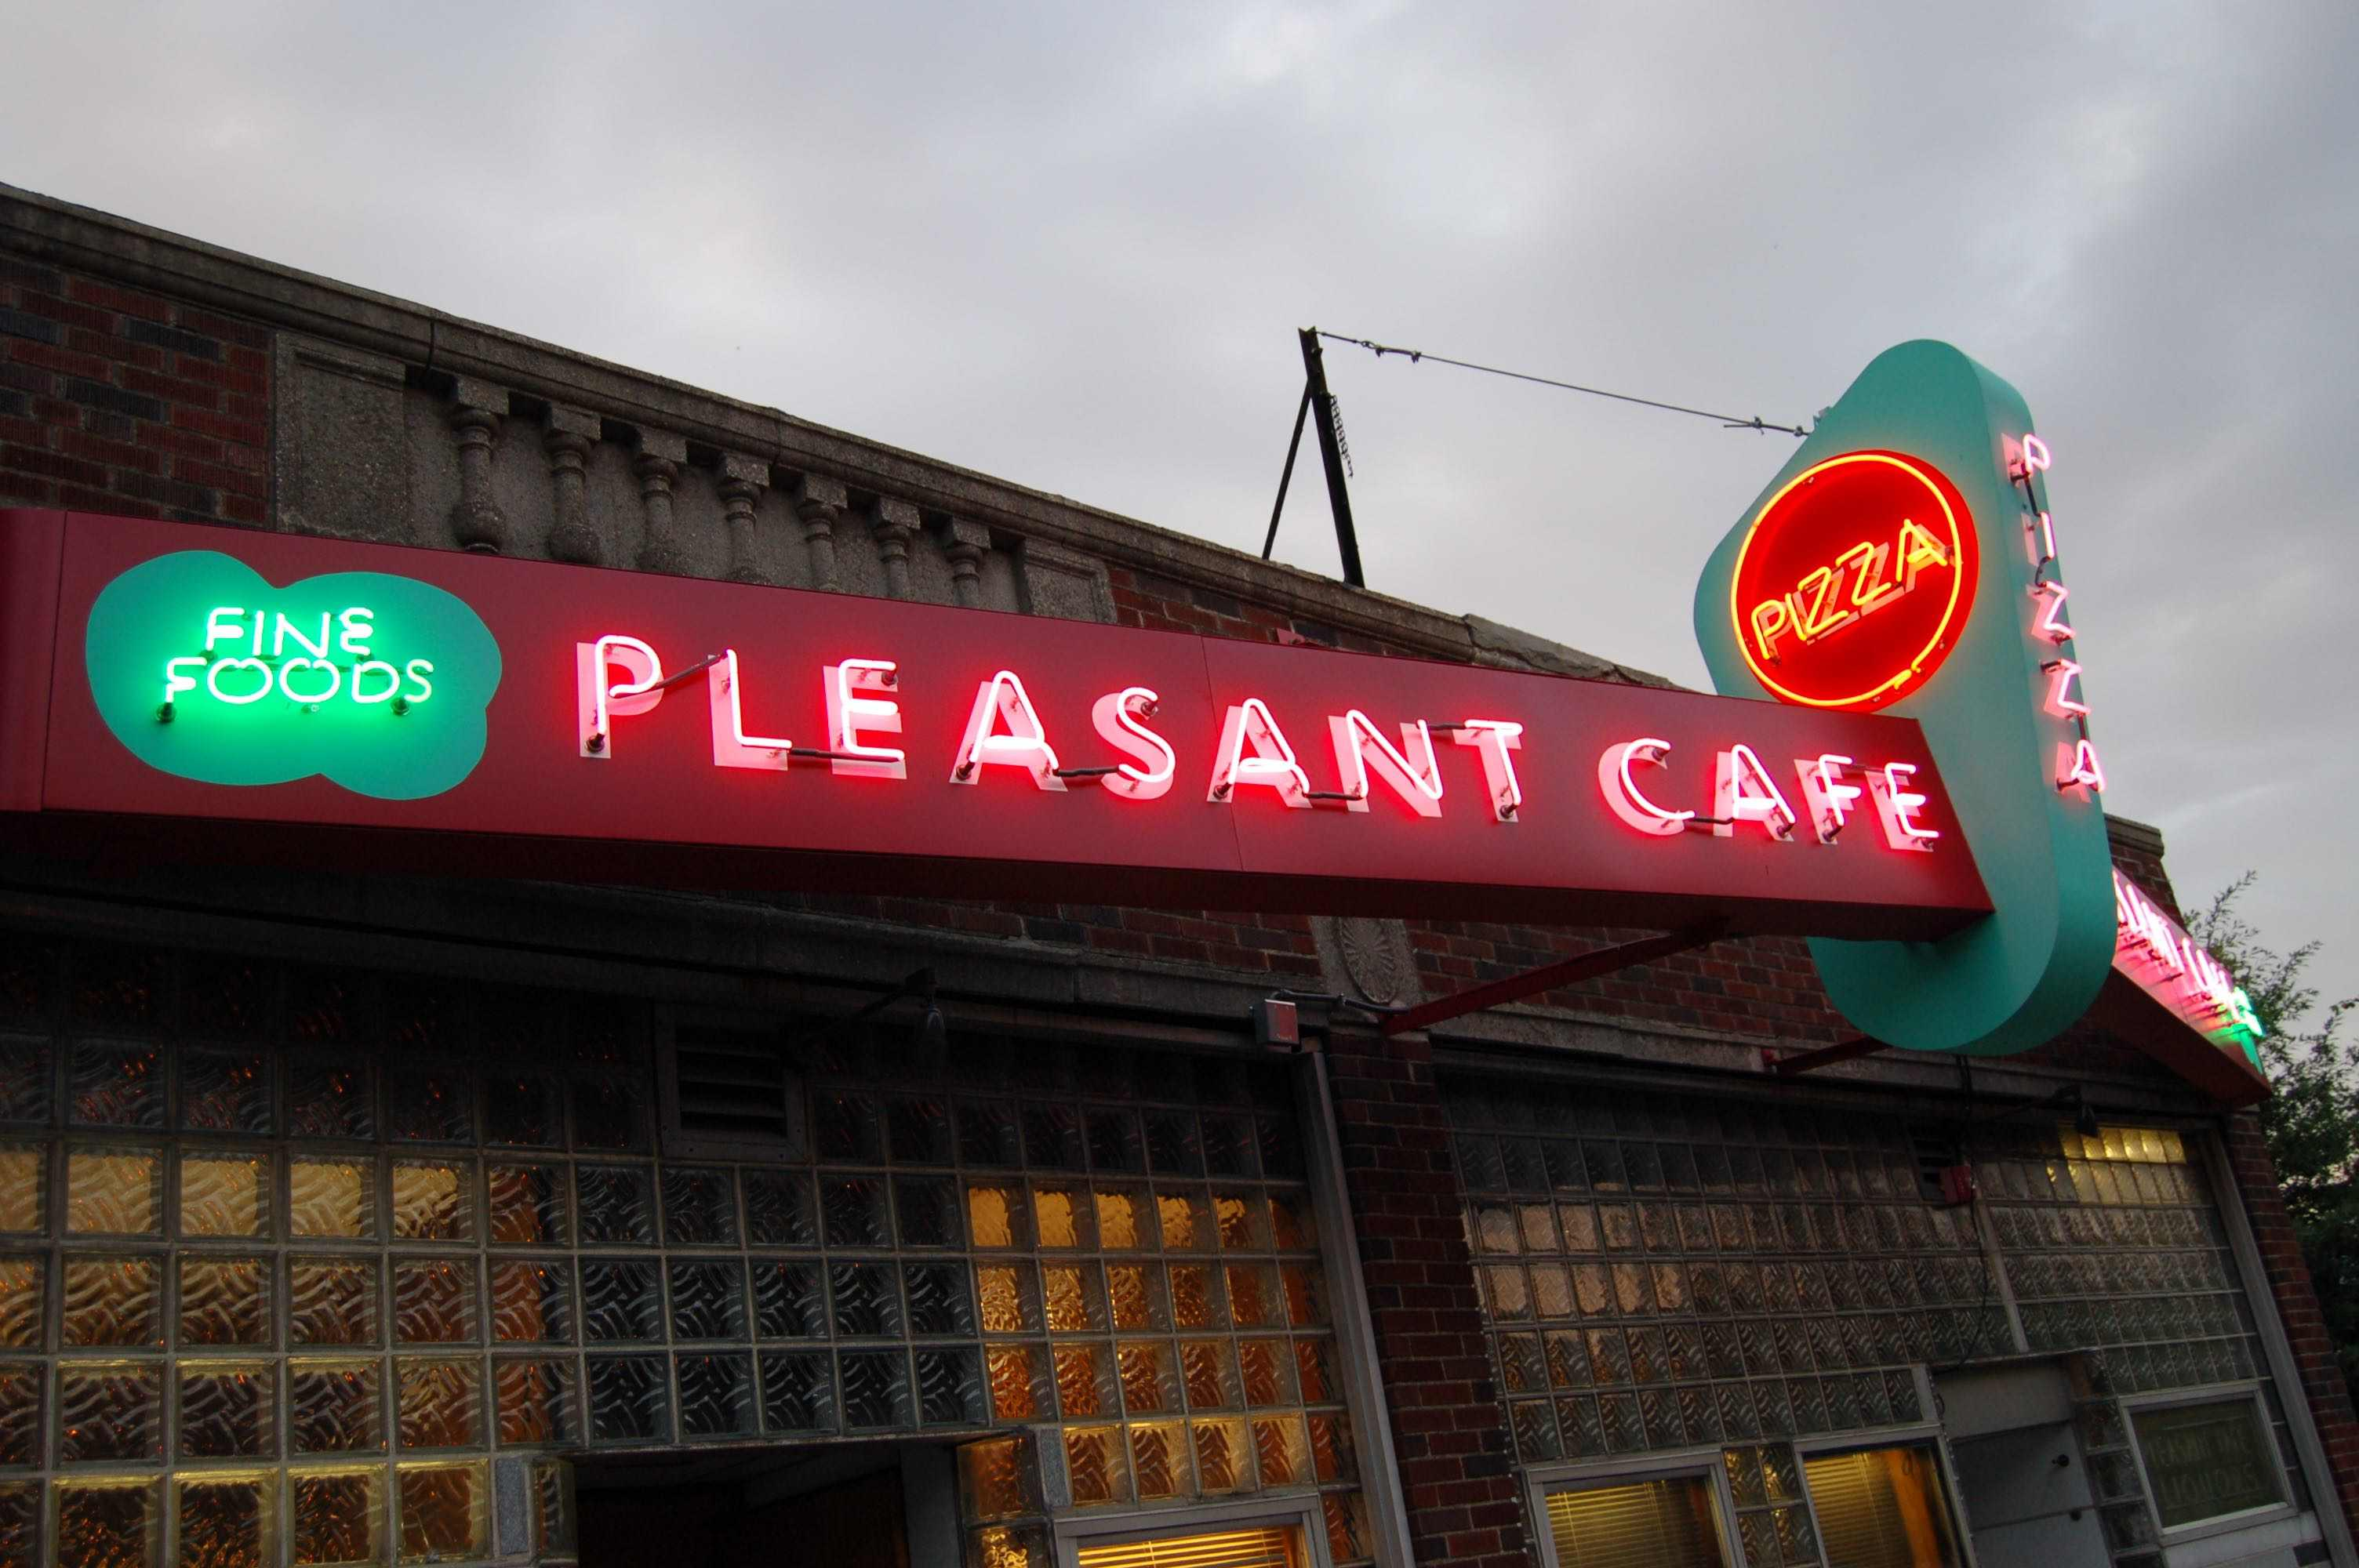 Pizza restaurant stories: Pleasant Cafe, Roslindale, Mass.